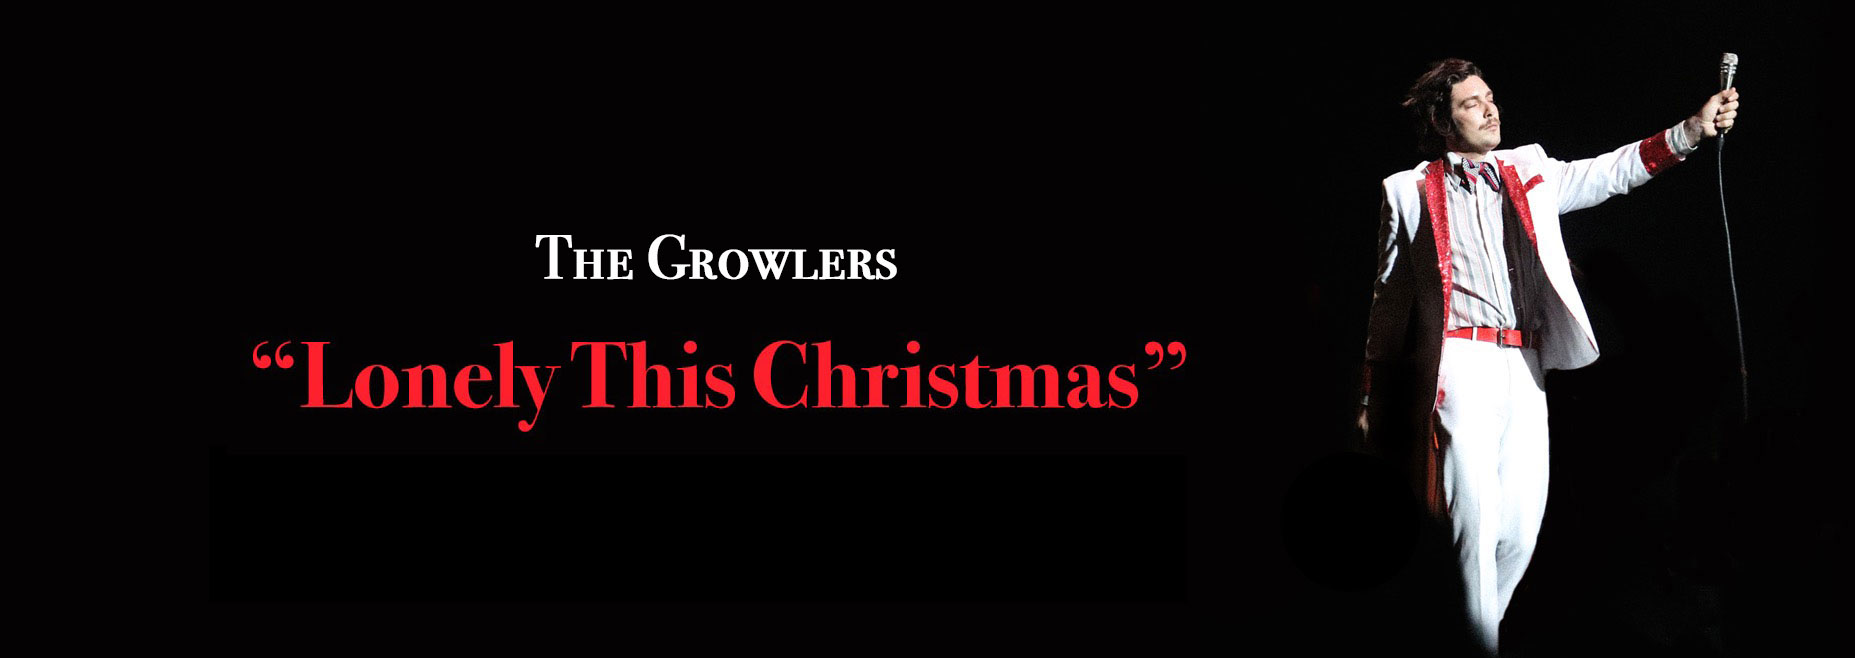 THE GROWLERS LONELY THIS CHRISTMAS SINGLE ON SPOTIFY